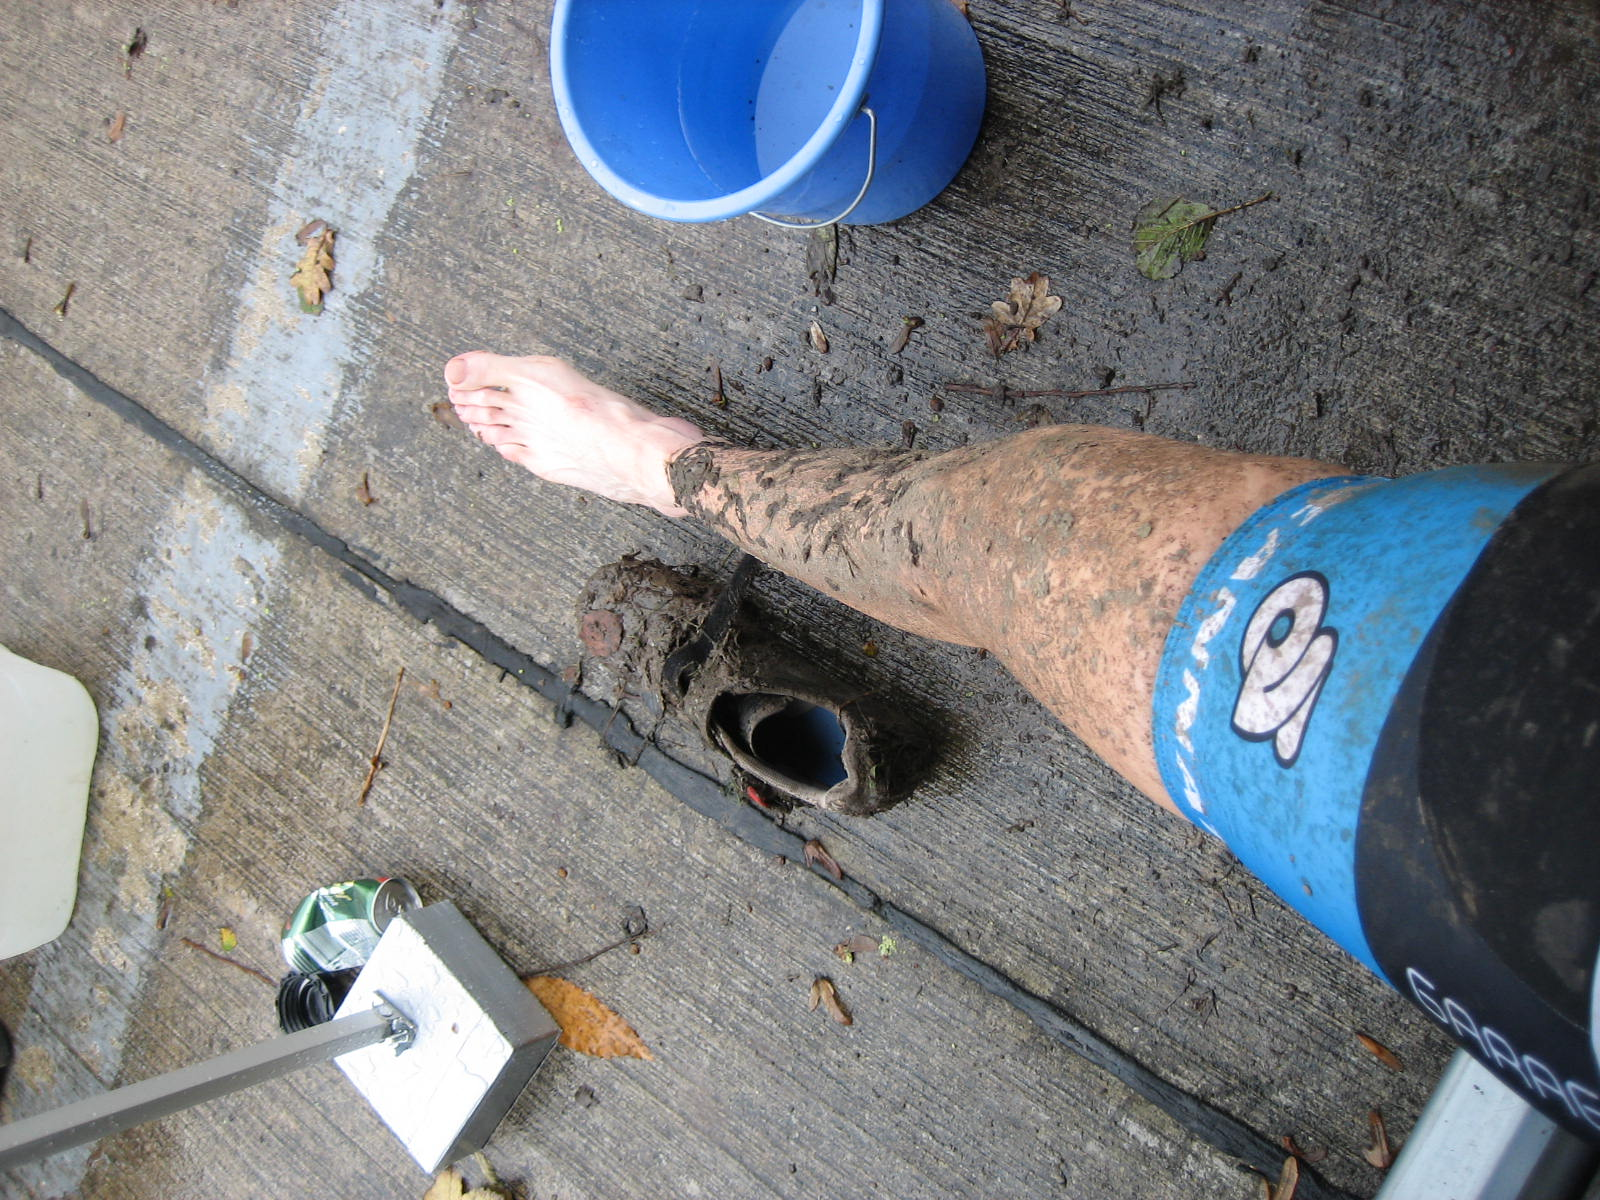 Muddy post-race legs ? Christine Vardaros